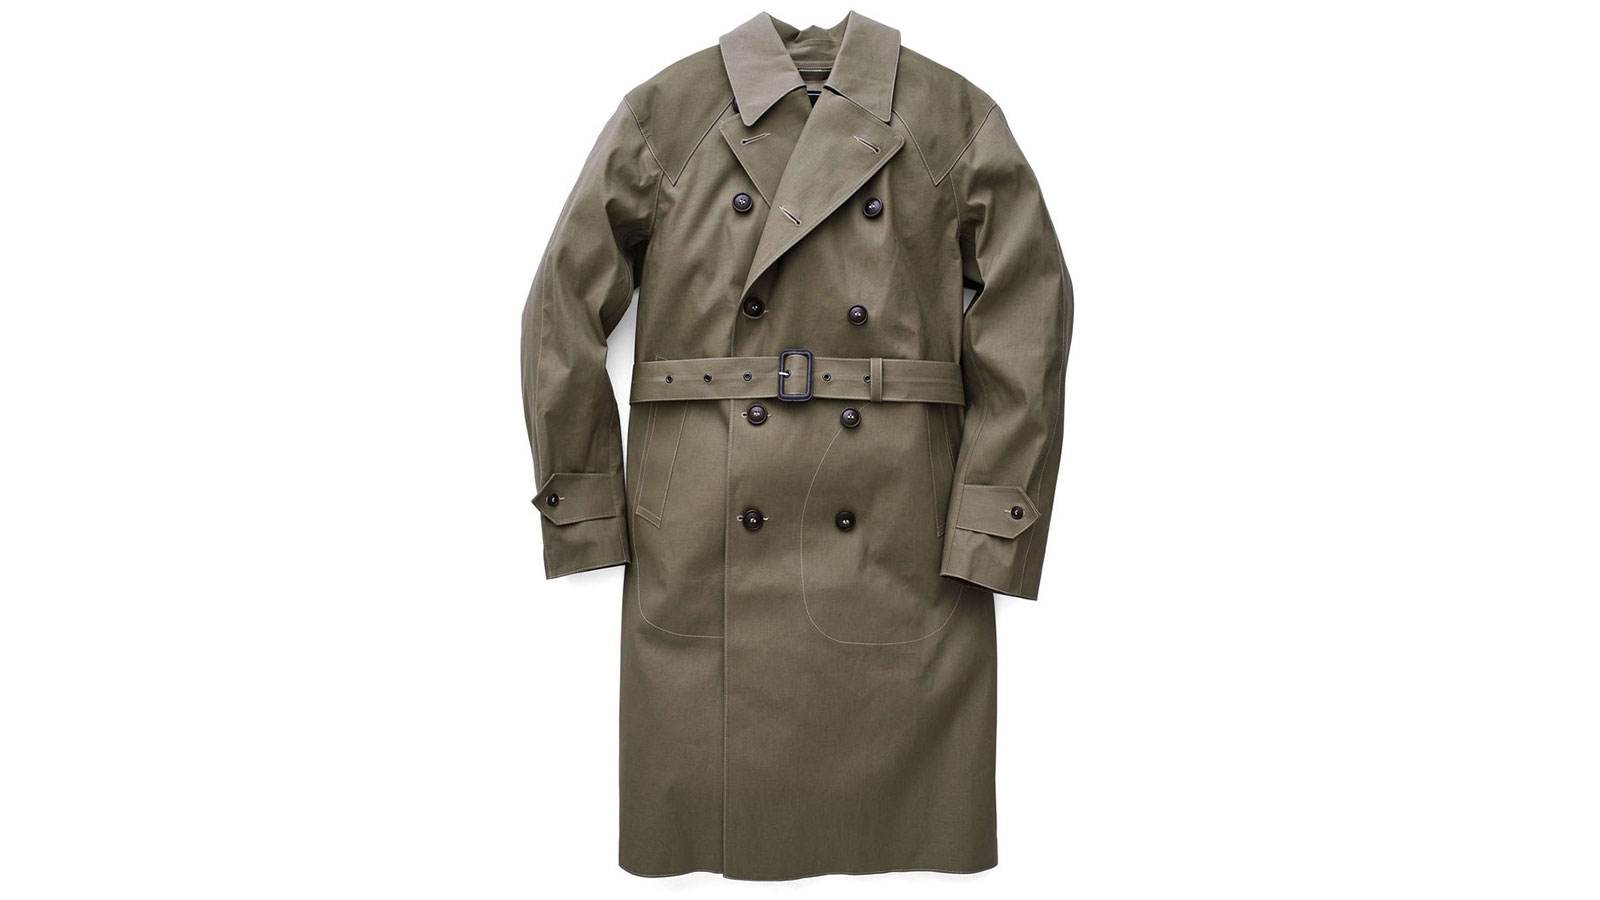 Todd Snyder Men's Trench Coats | The Best Men's Trench Coats